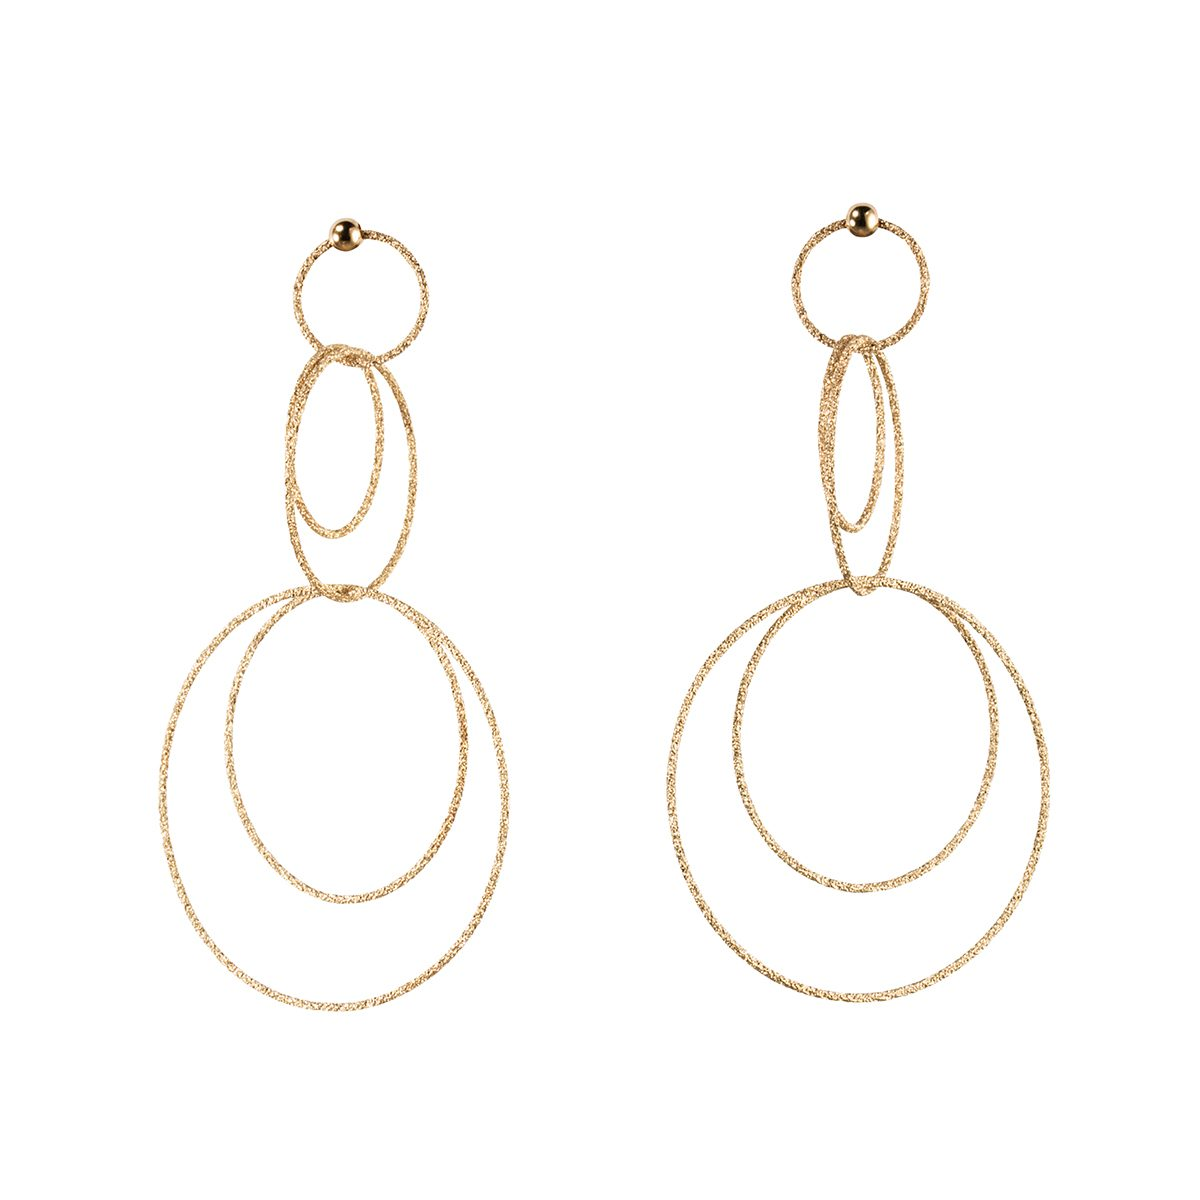 Calorina Bucci|Earrings